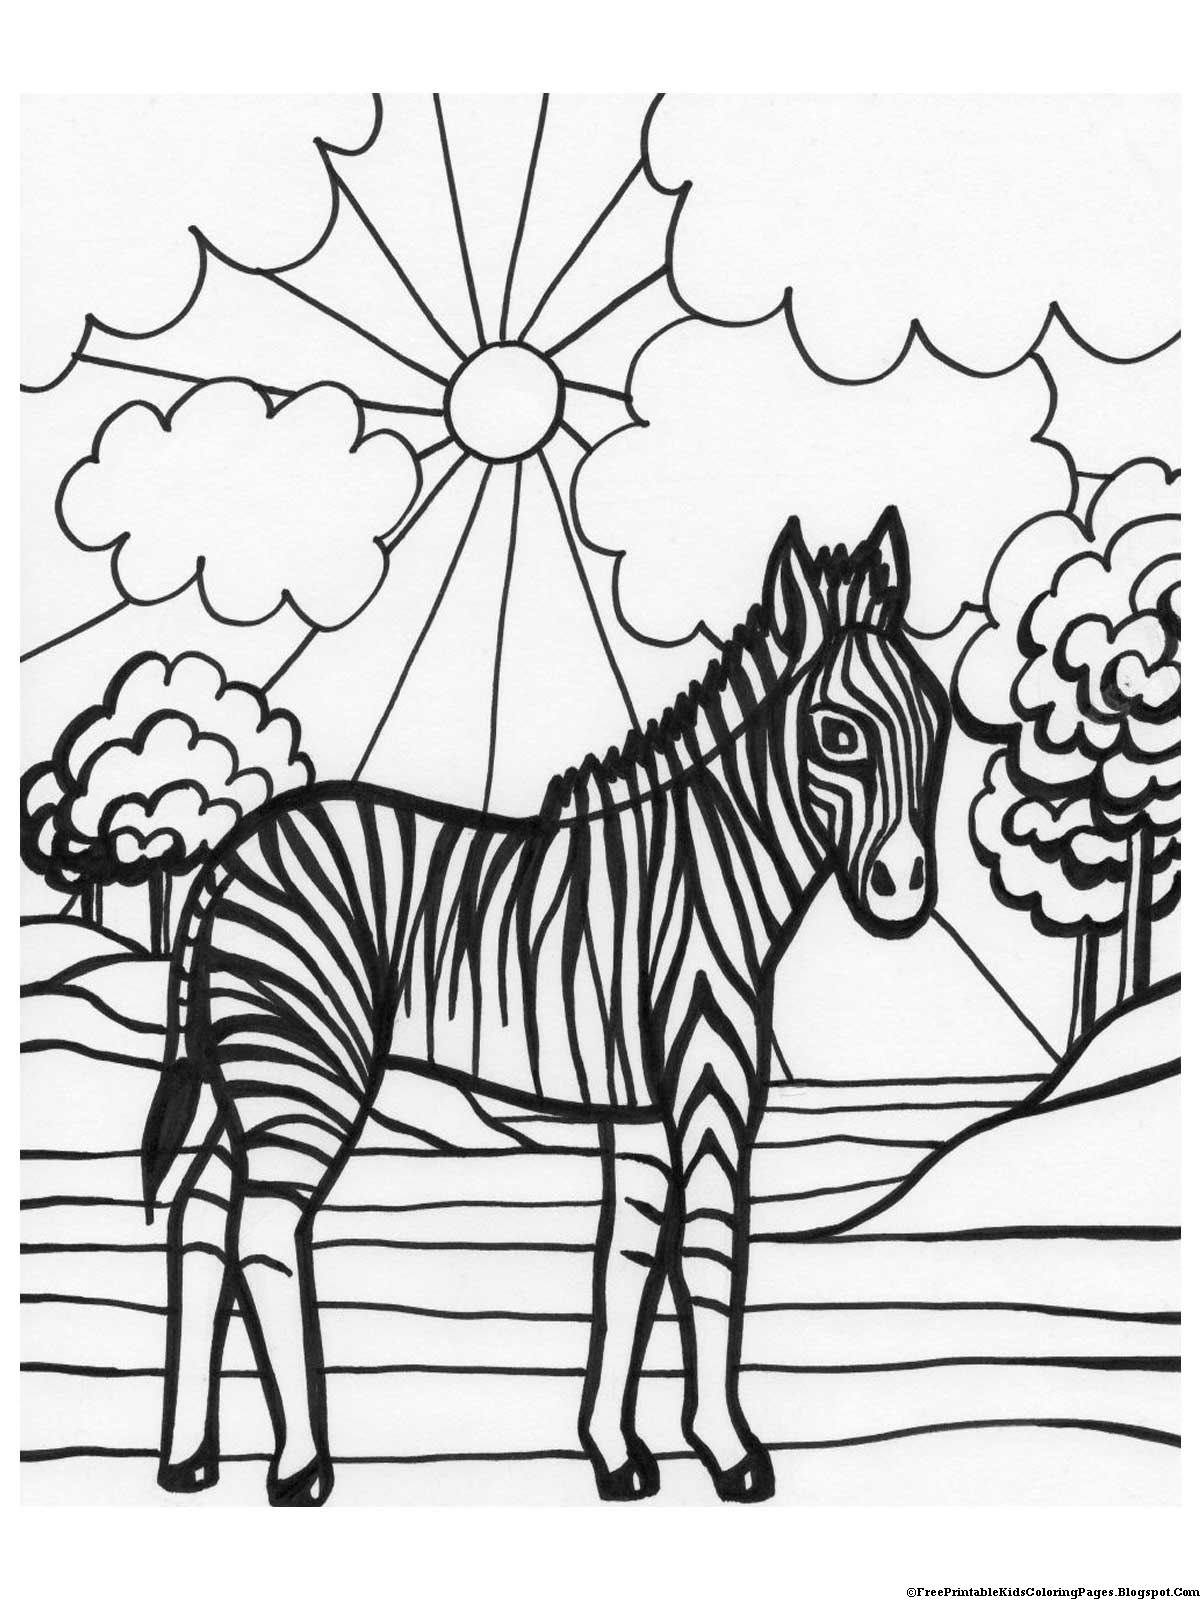 fun coloring pictures printable coloring pages for kids coloring pages for kids pictures fun coloring